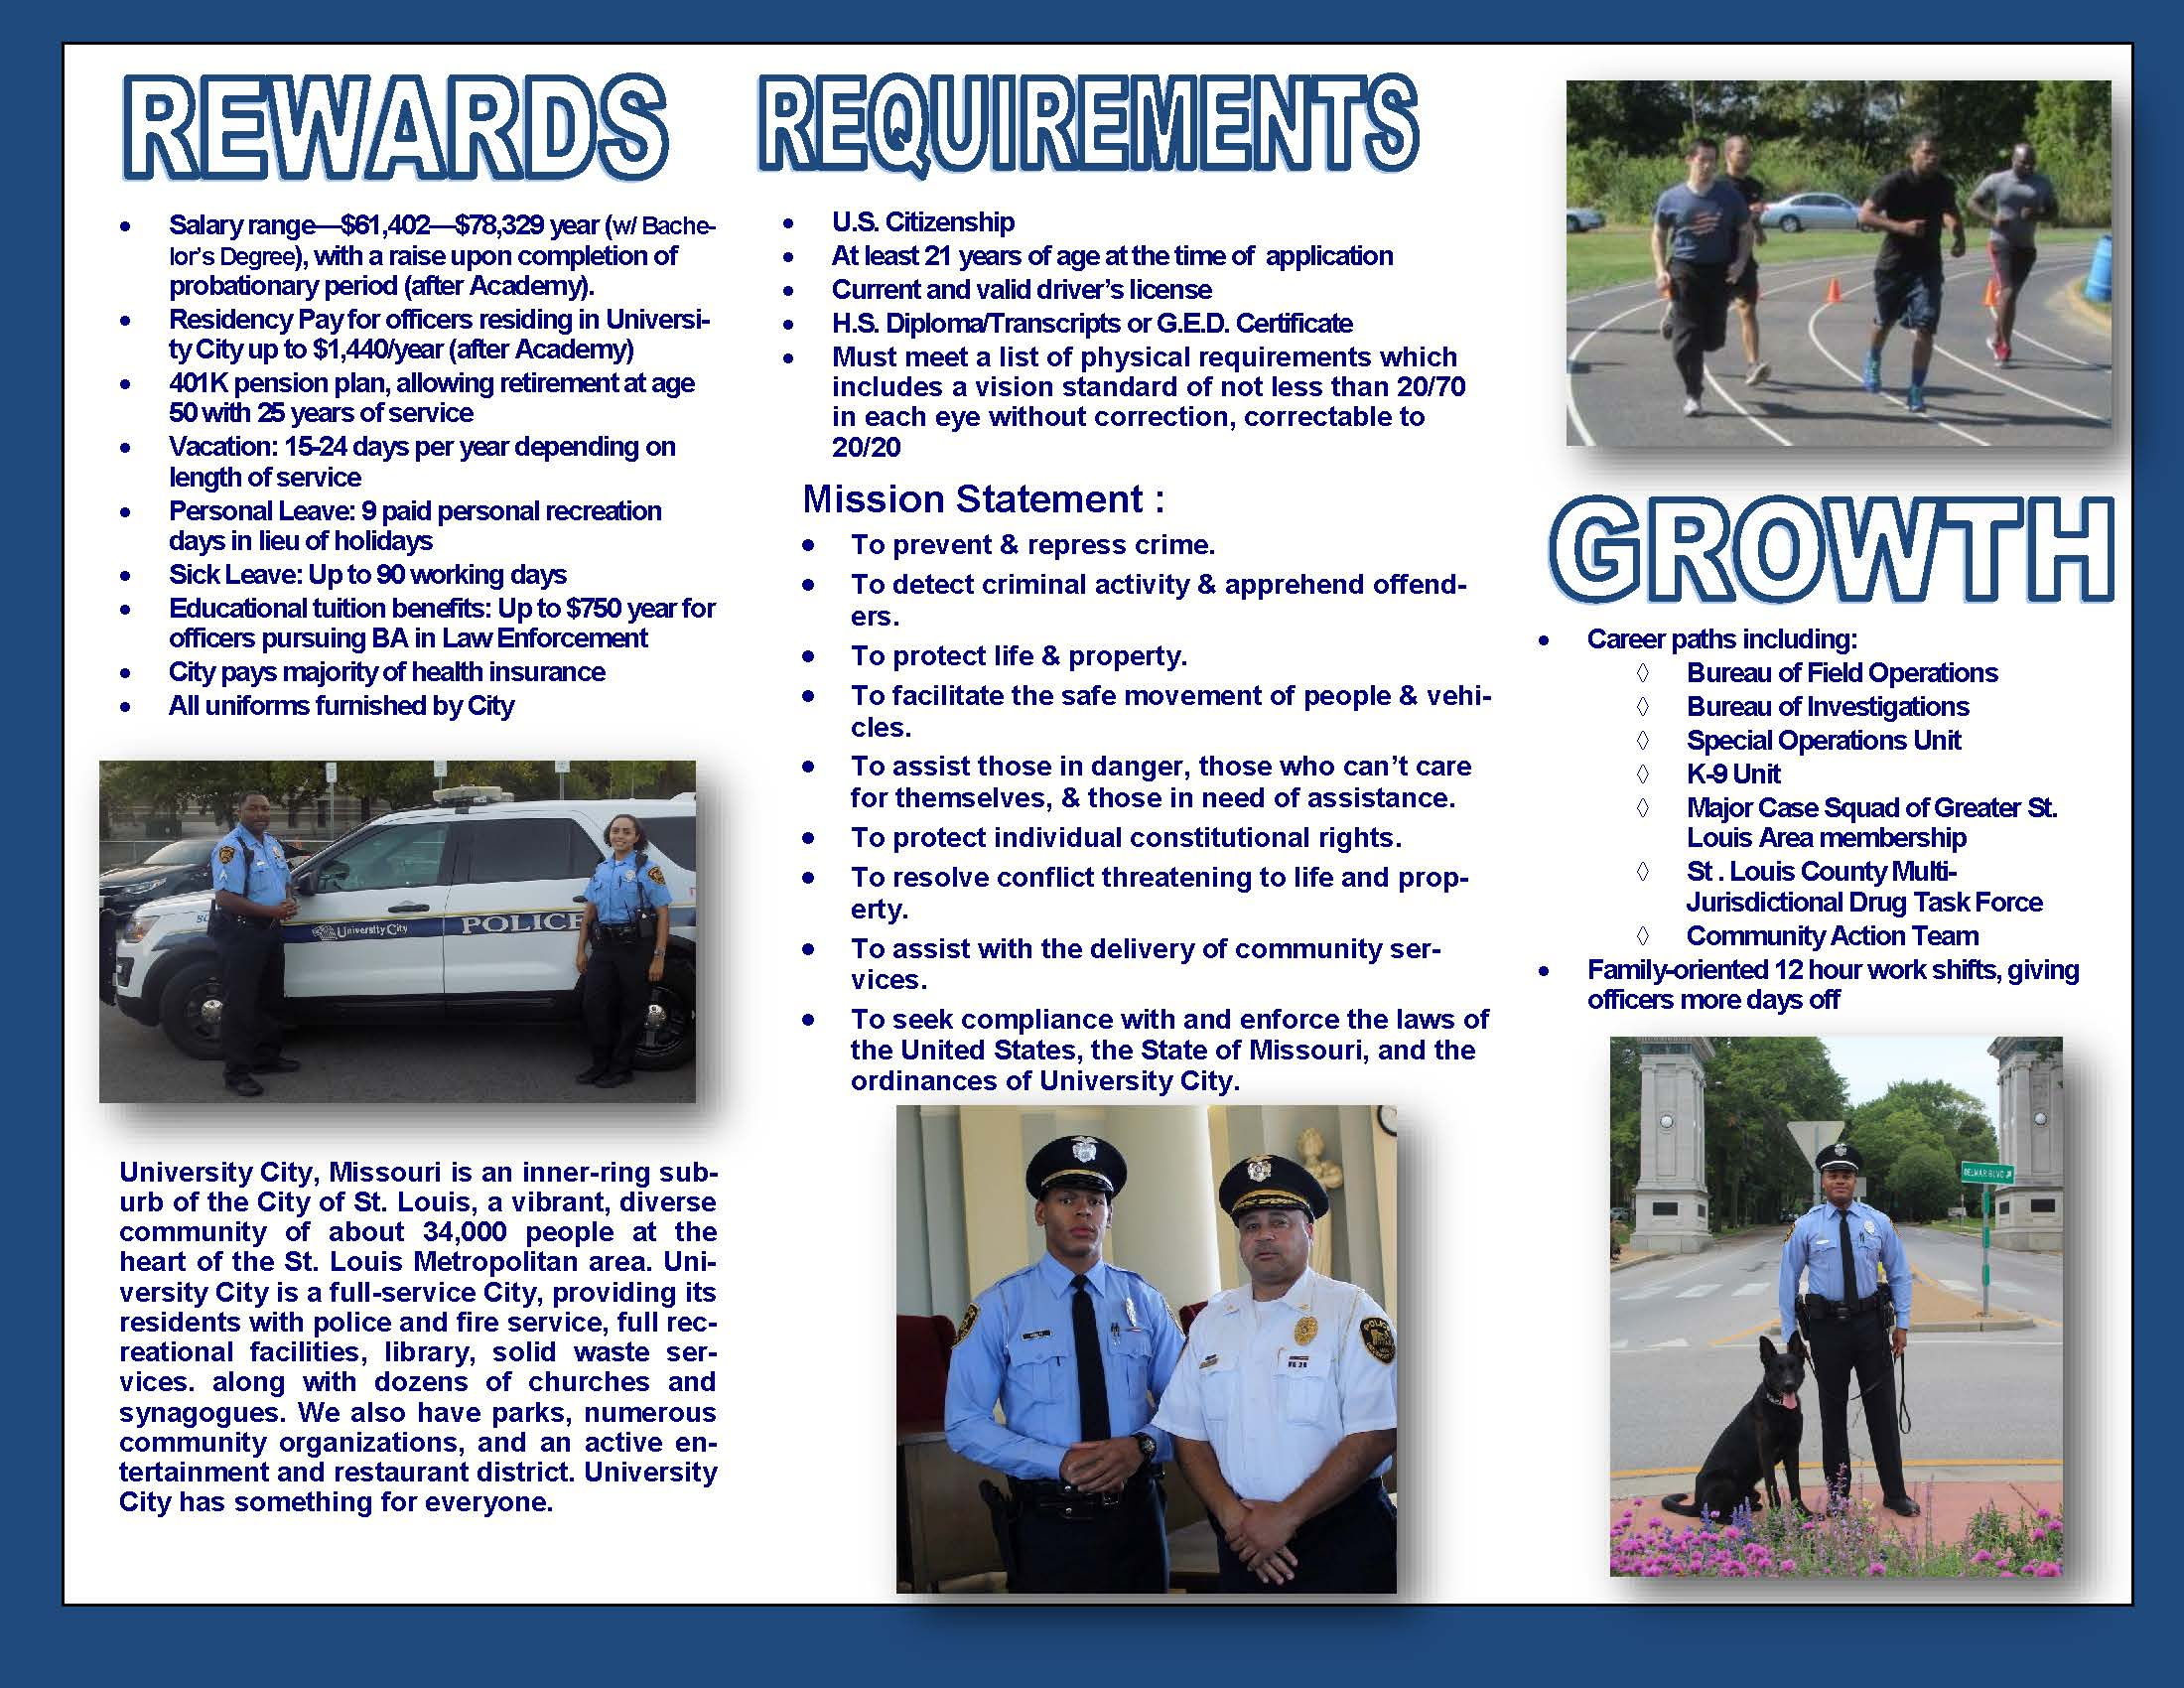 2019 UCPD Recruitment  Flyer - Back